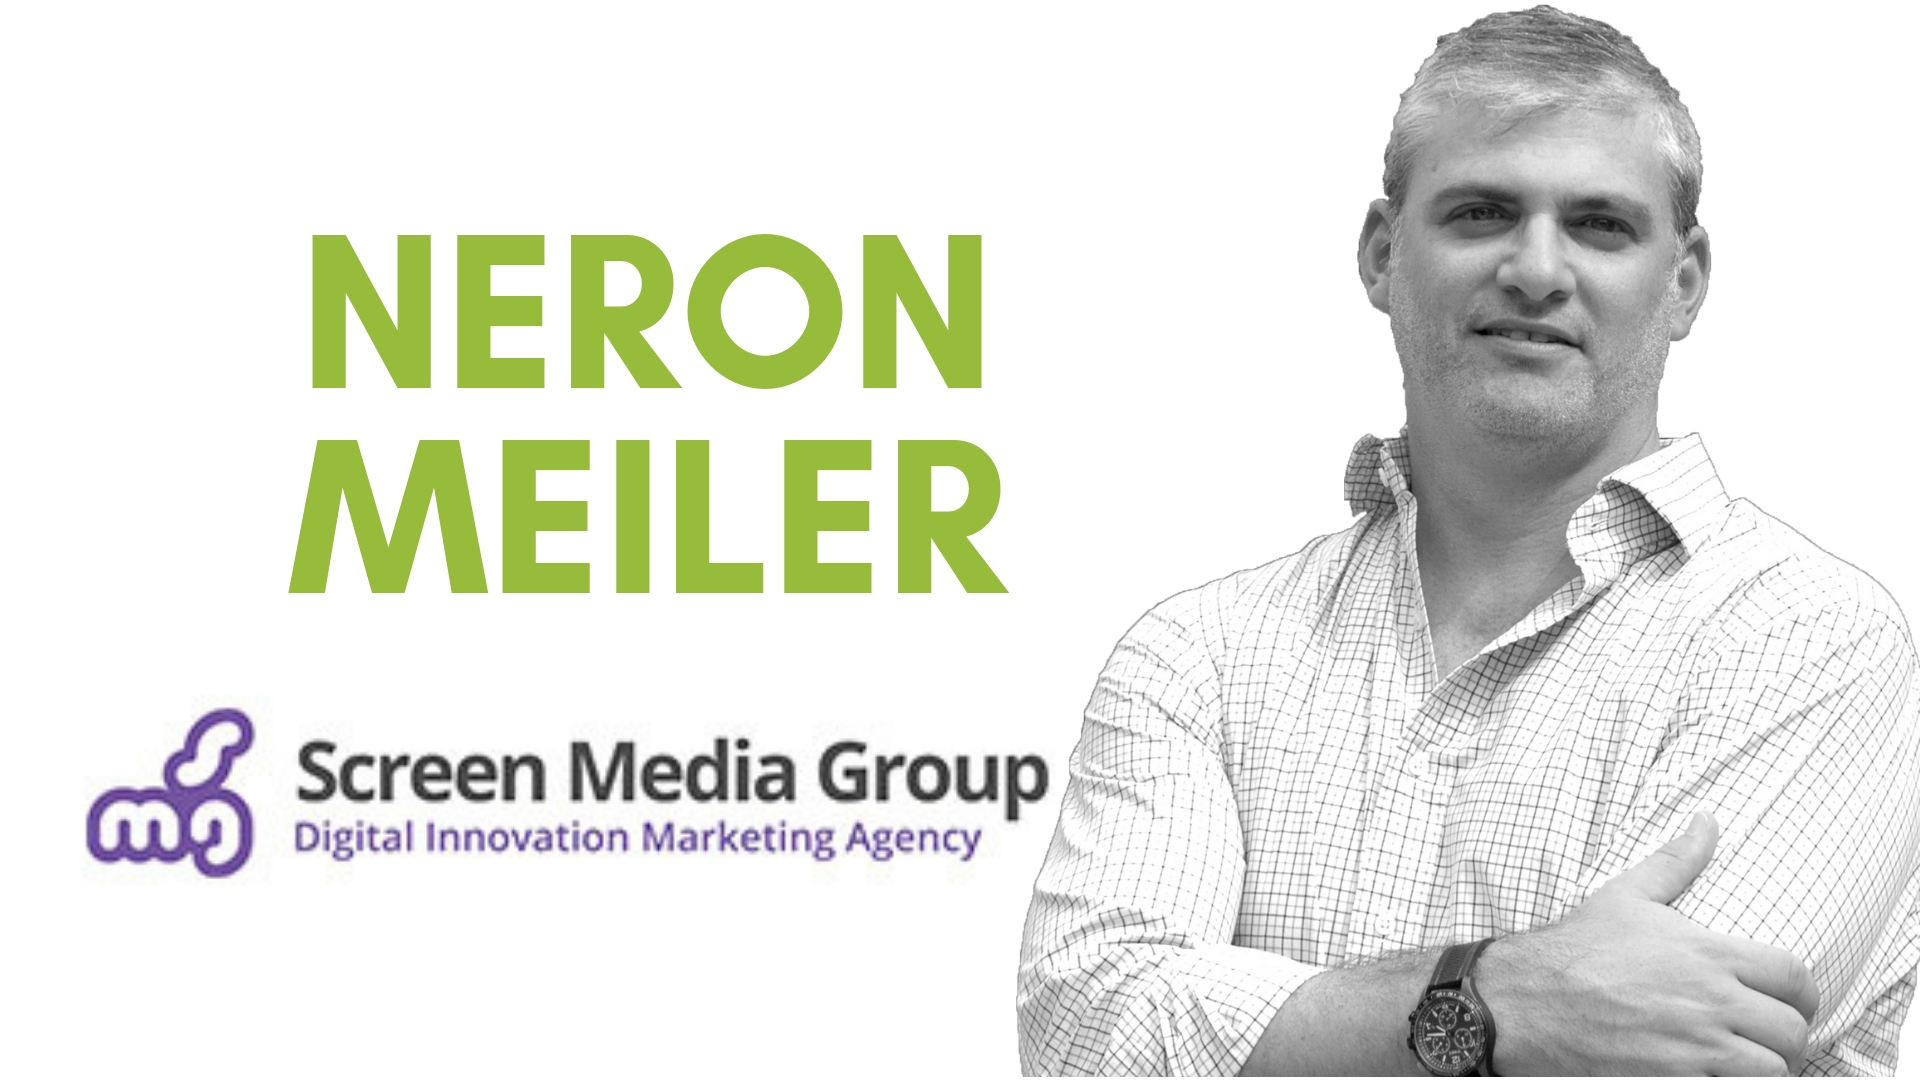 NERON MEILER, SPECIALIST IN DIGITAL MARKETING REVEALS WHAT TO EXPECT IN 2019